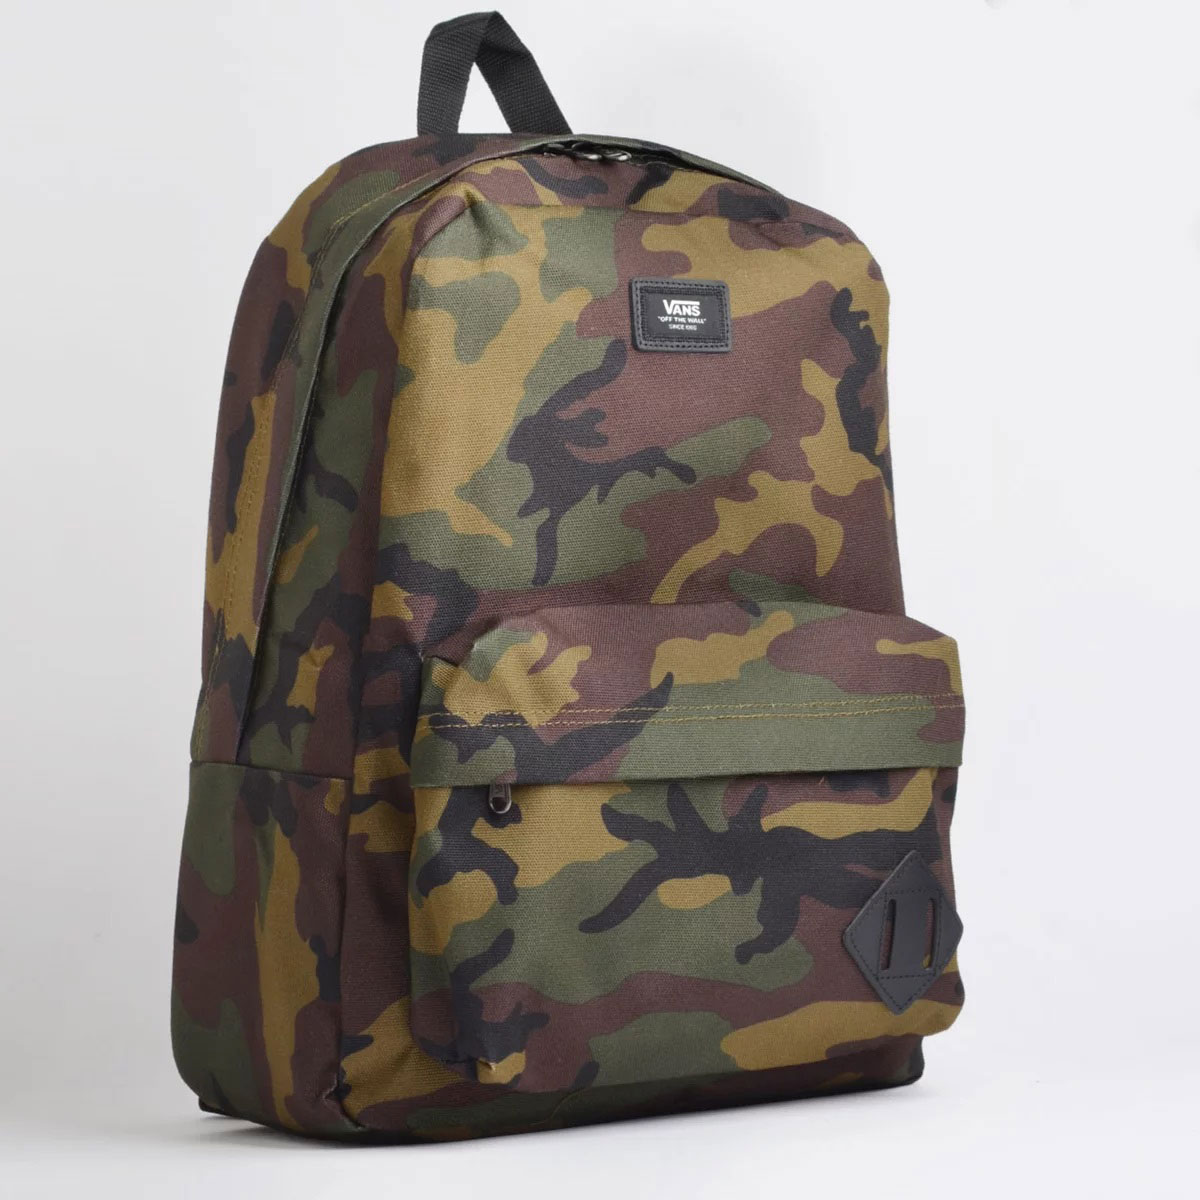 Mochila Vans Old Skool III Backpack Classic Camo